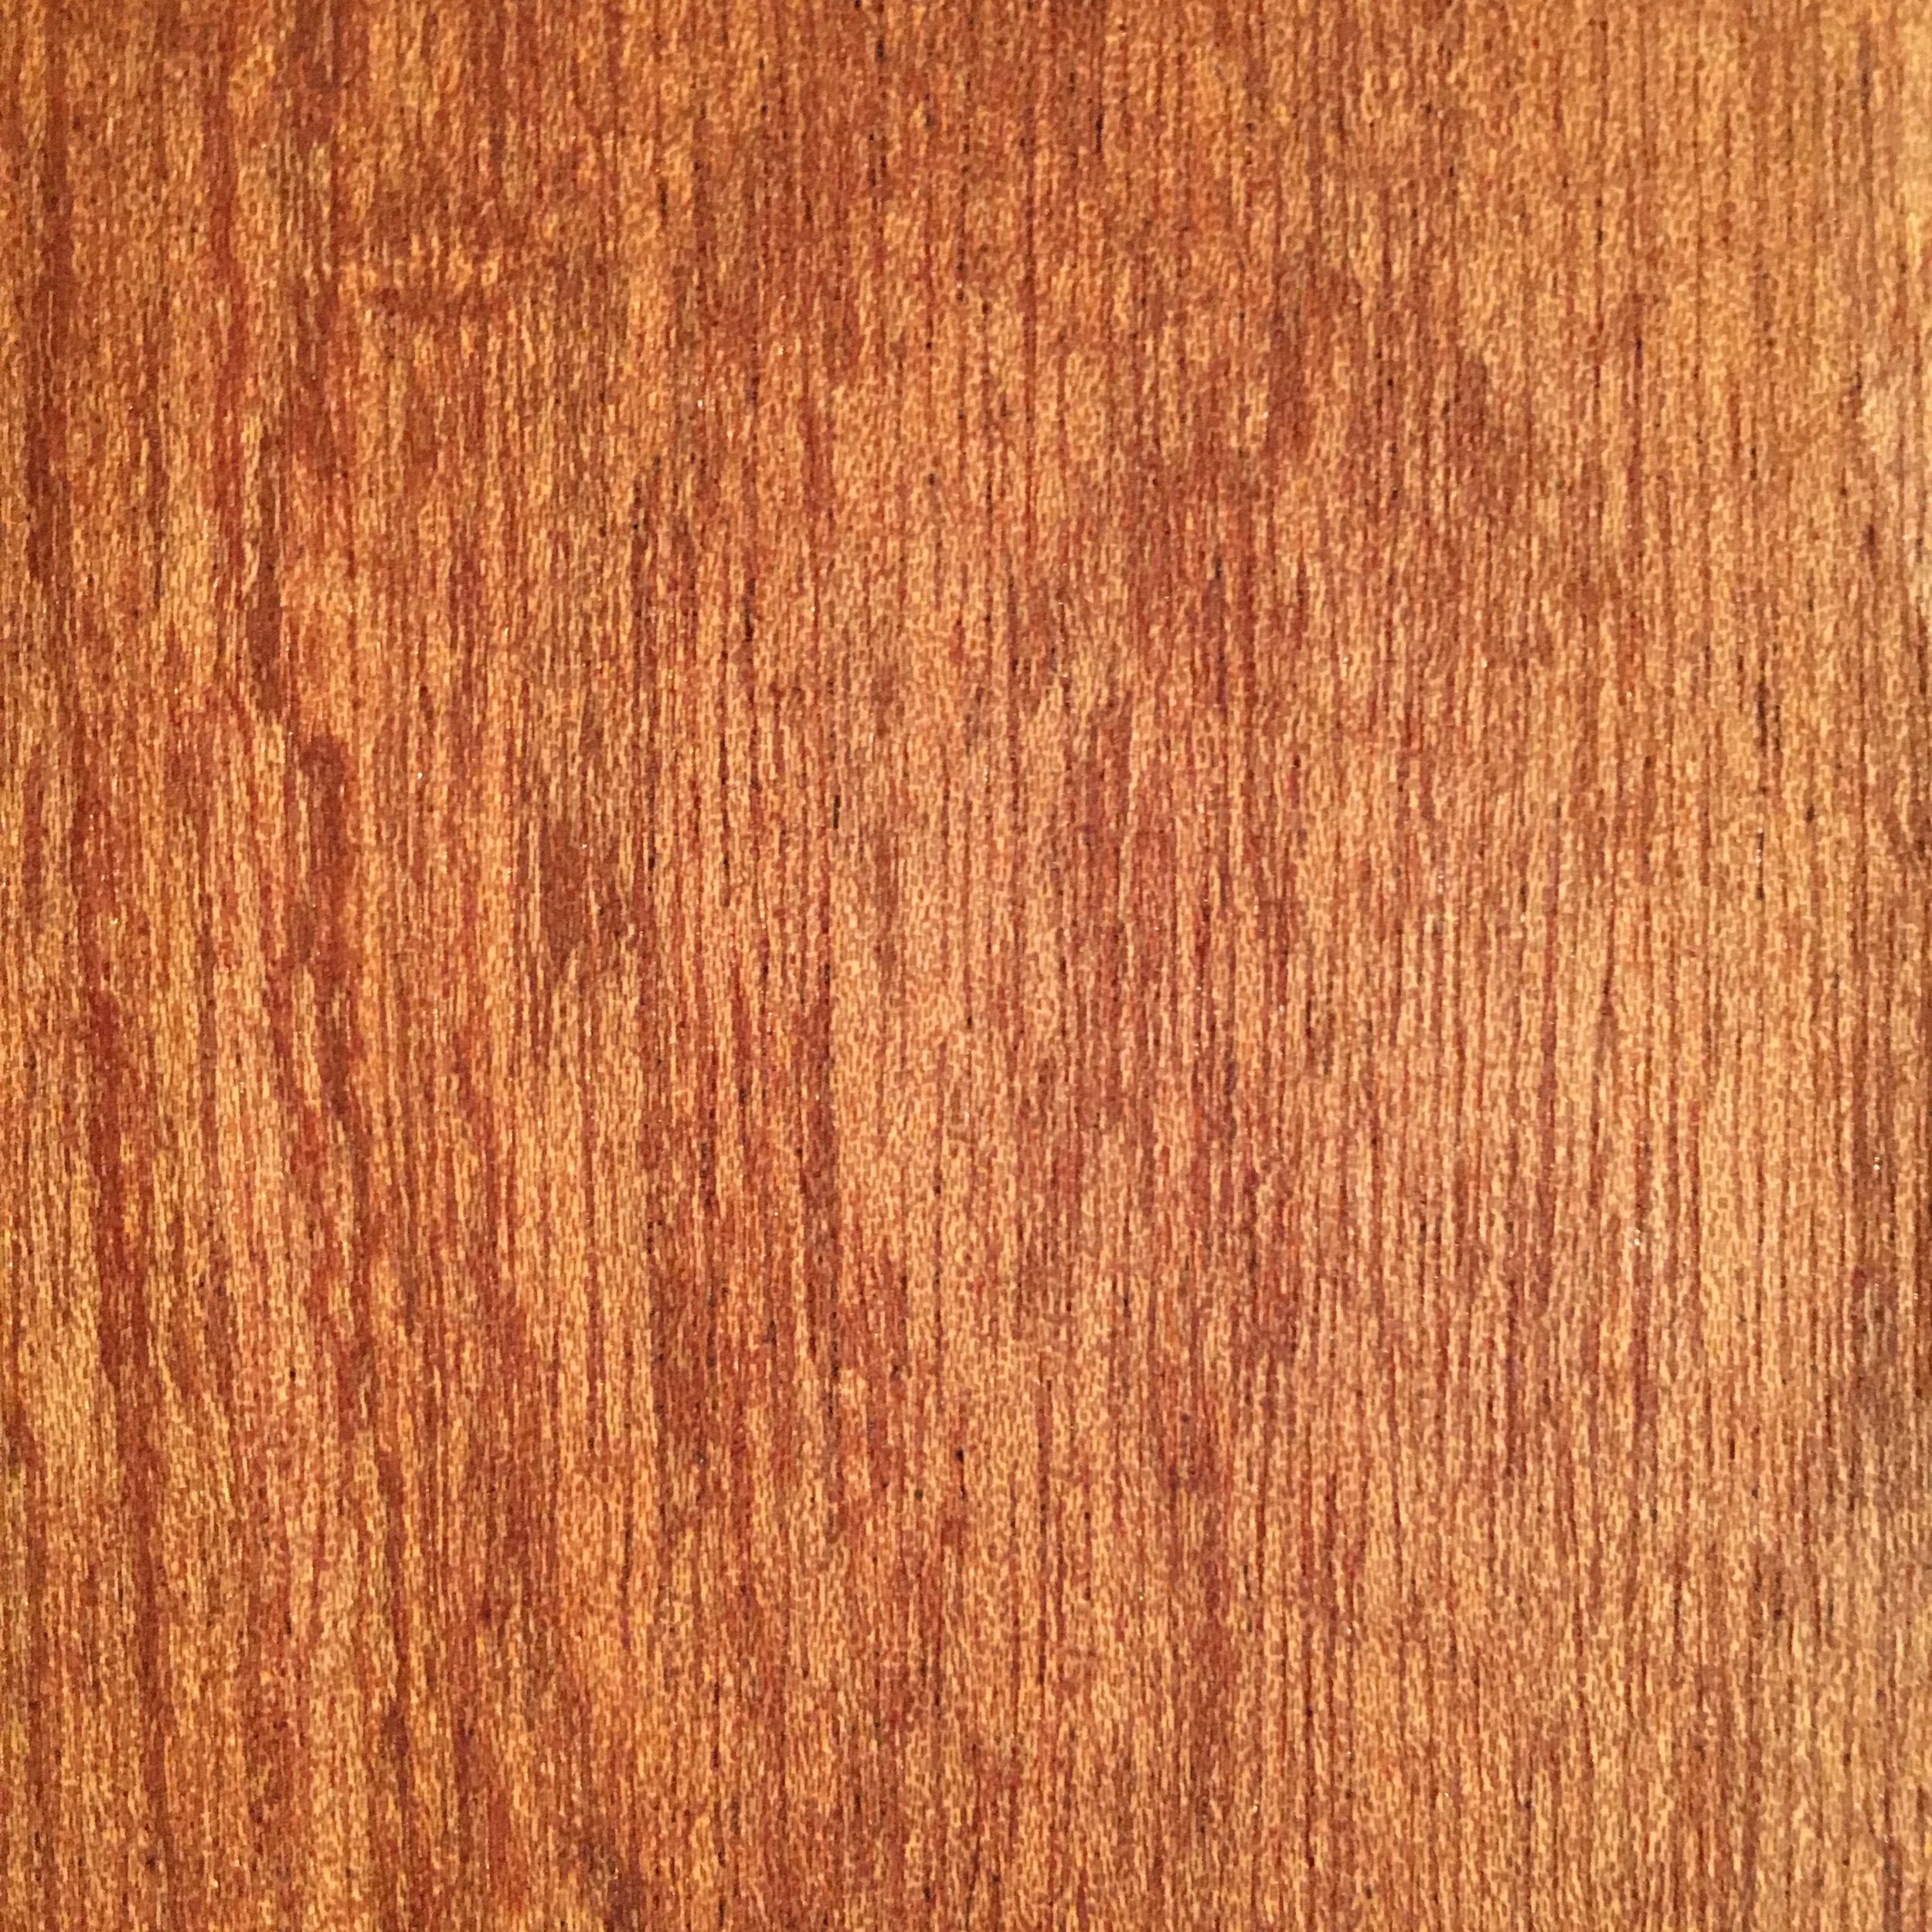 Sapele    *Ingerstyle Guitars were used for these photographs.